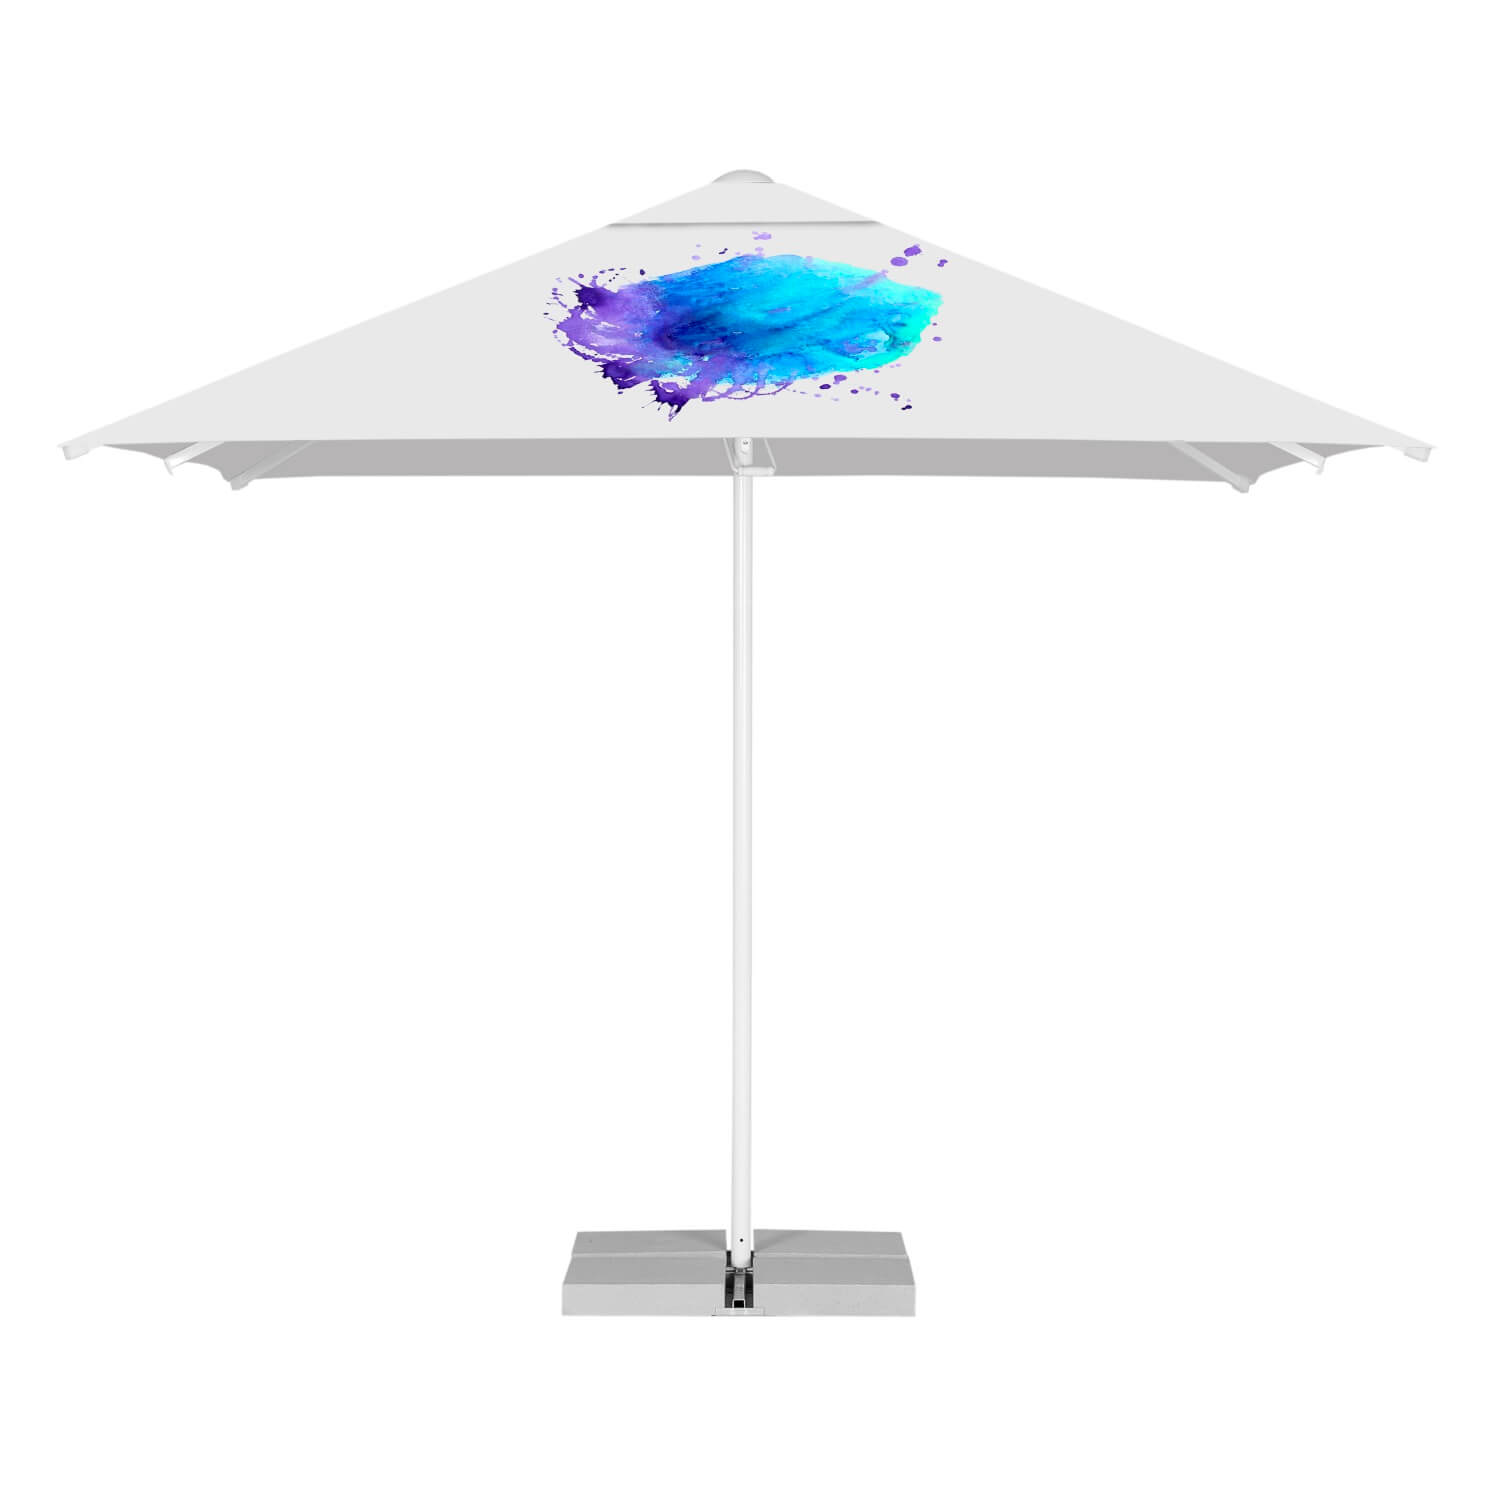 17. Easy Up Parasol Square 3 m